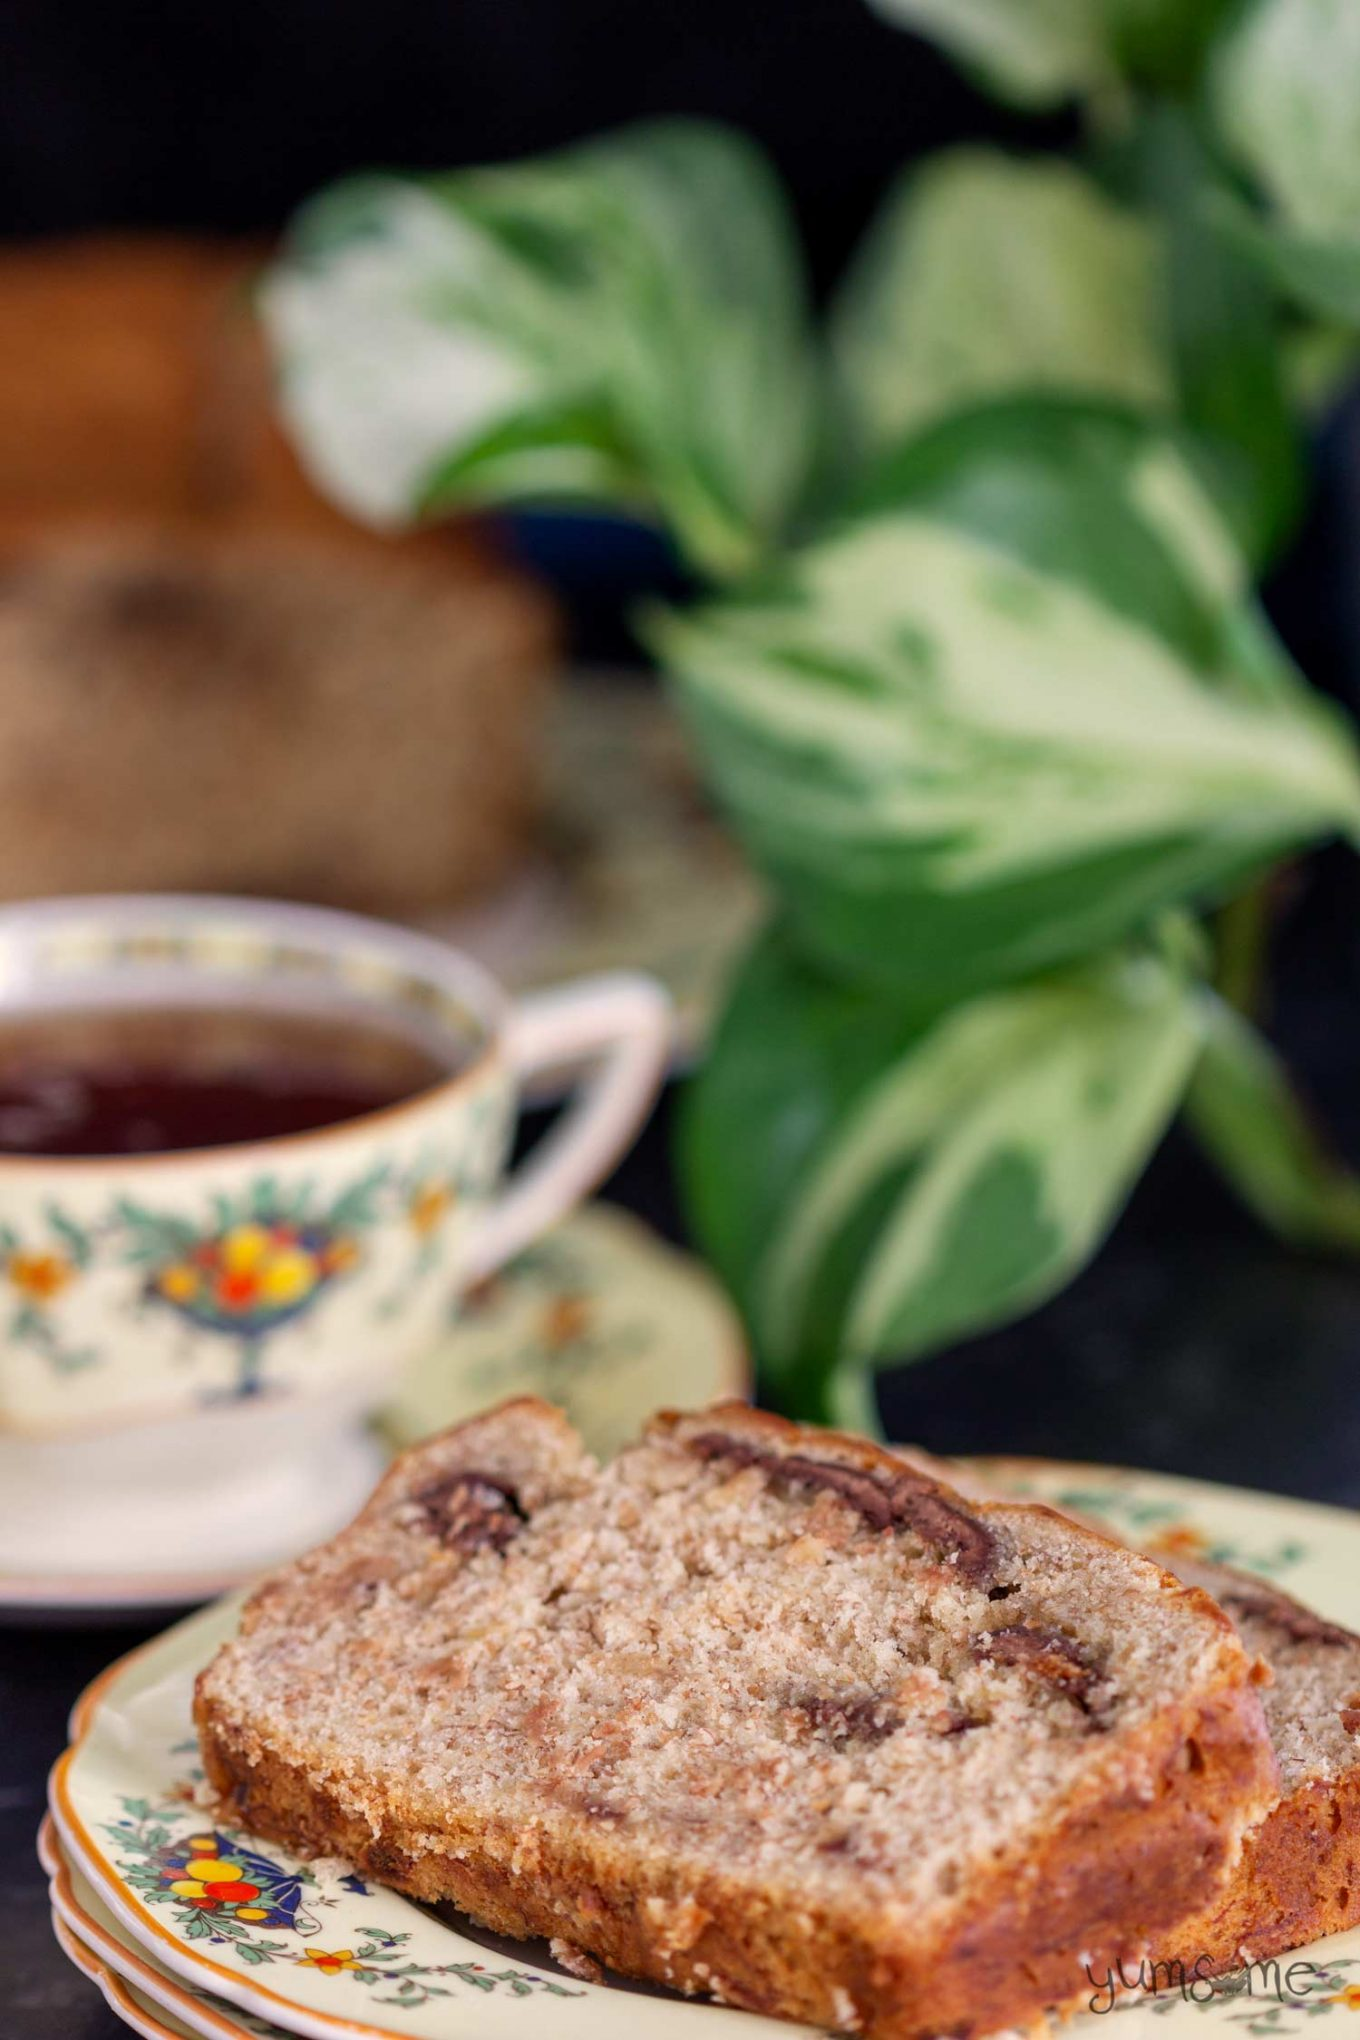 A cup of tea and a slice of chocolate chip banana bread.